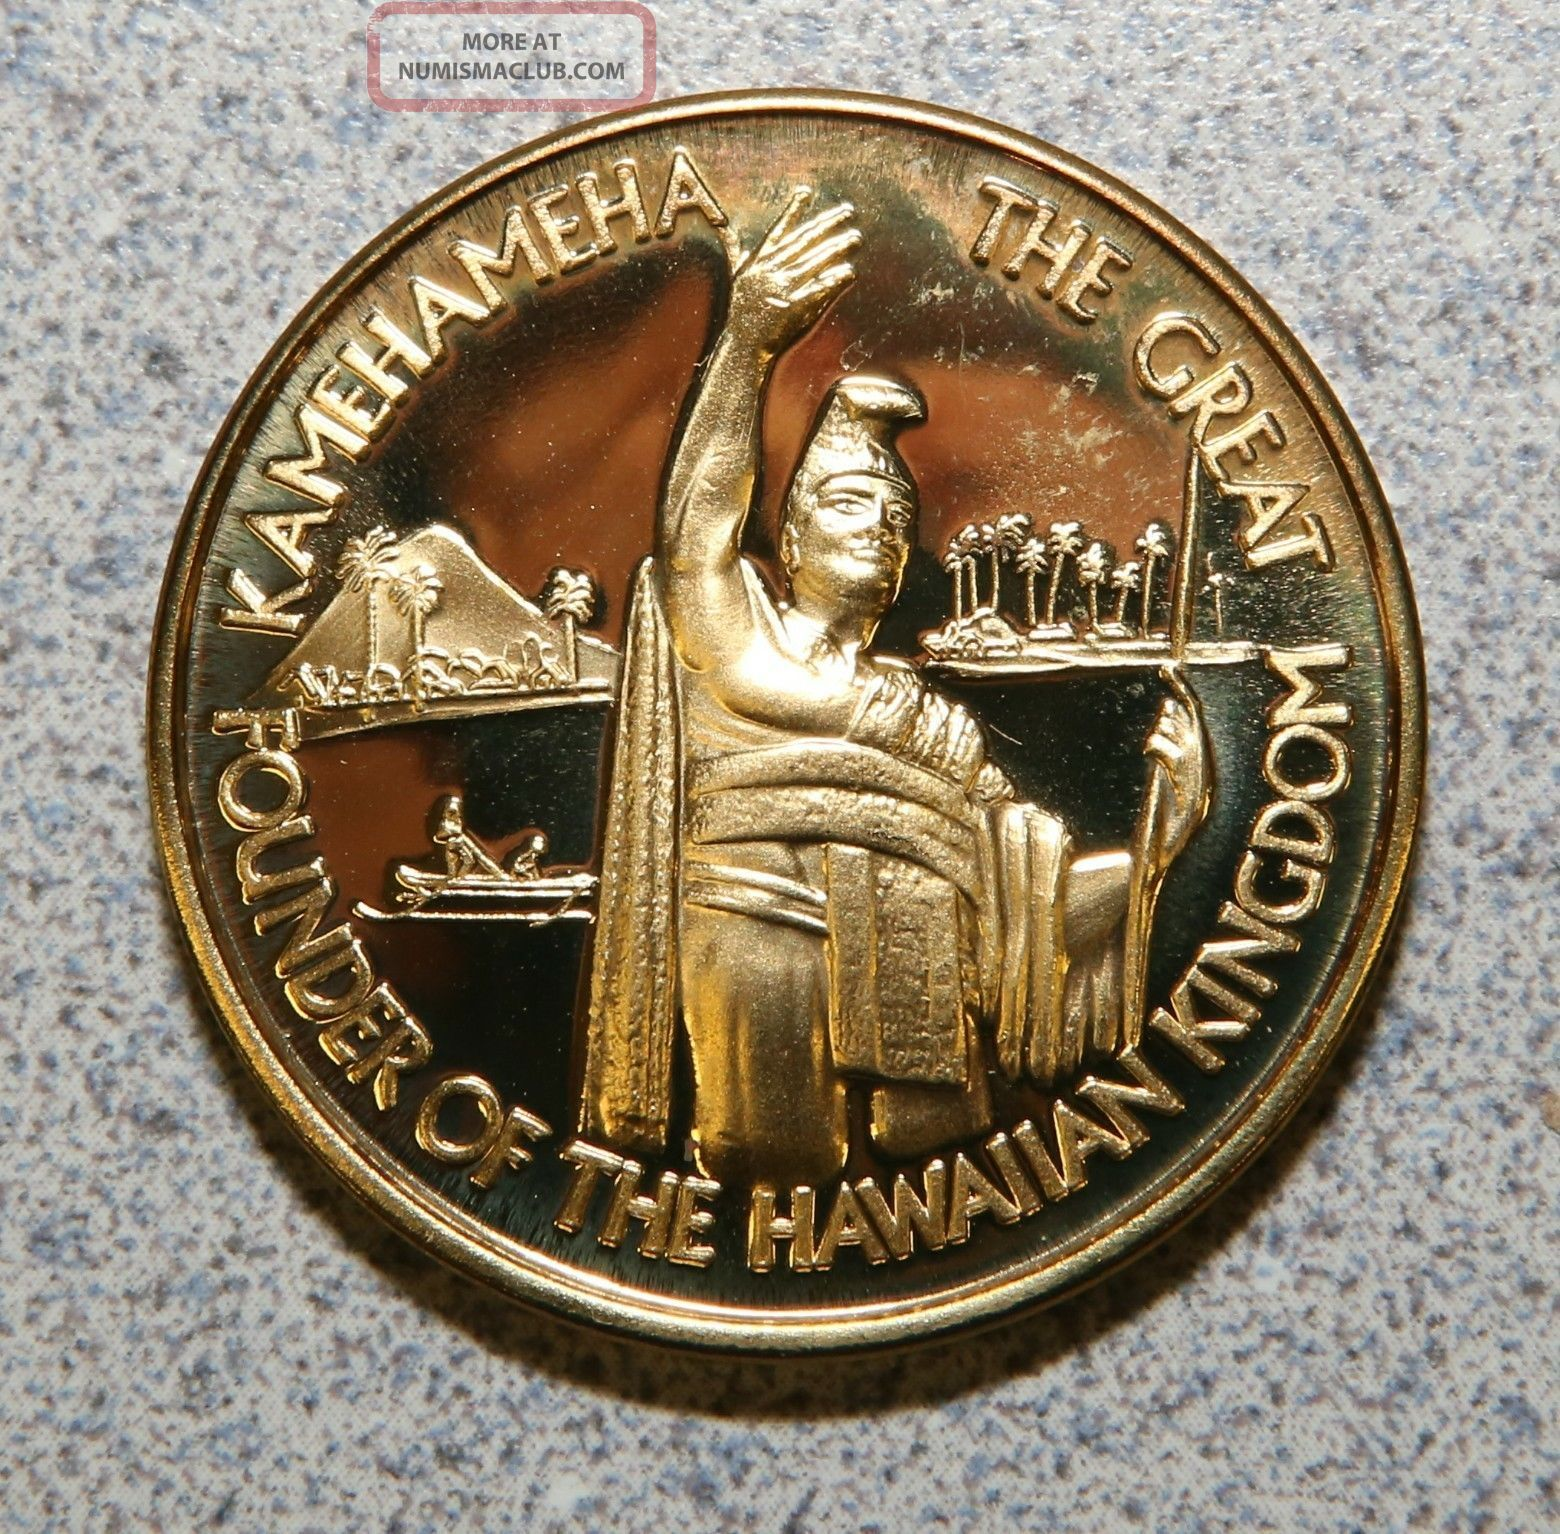 2m - 59 1976 Captain Cook Hawaii King Kamehameha Token Medal 39mm Bright Bronze Exonumia photo